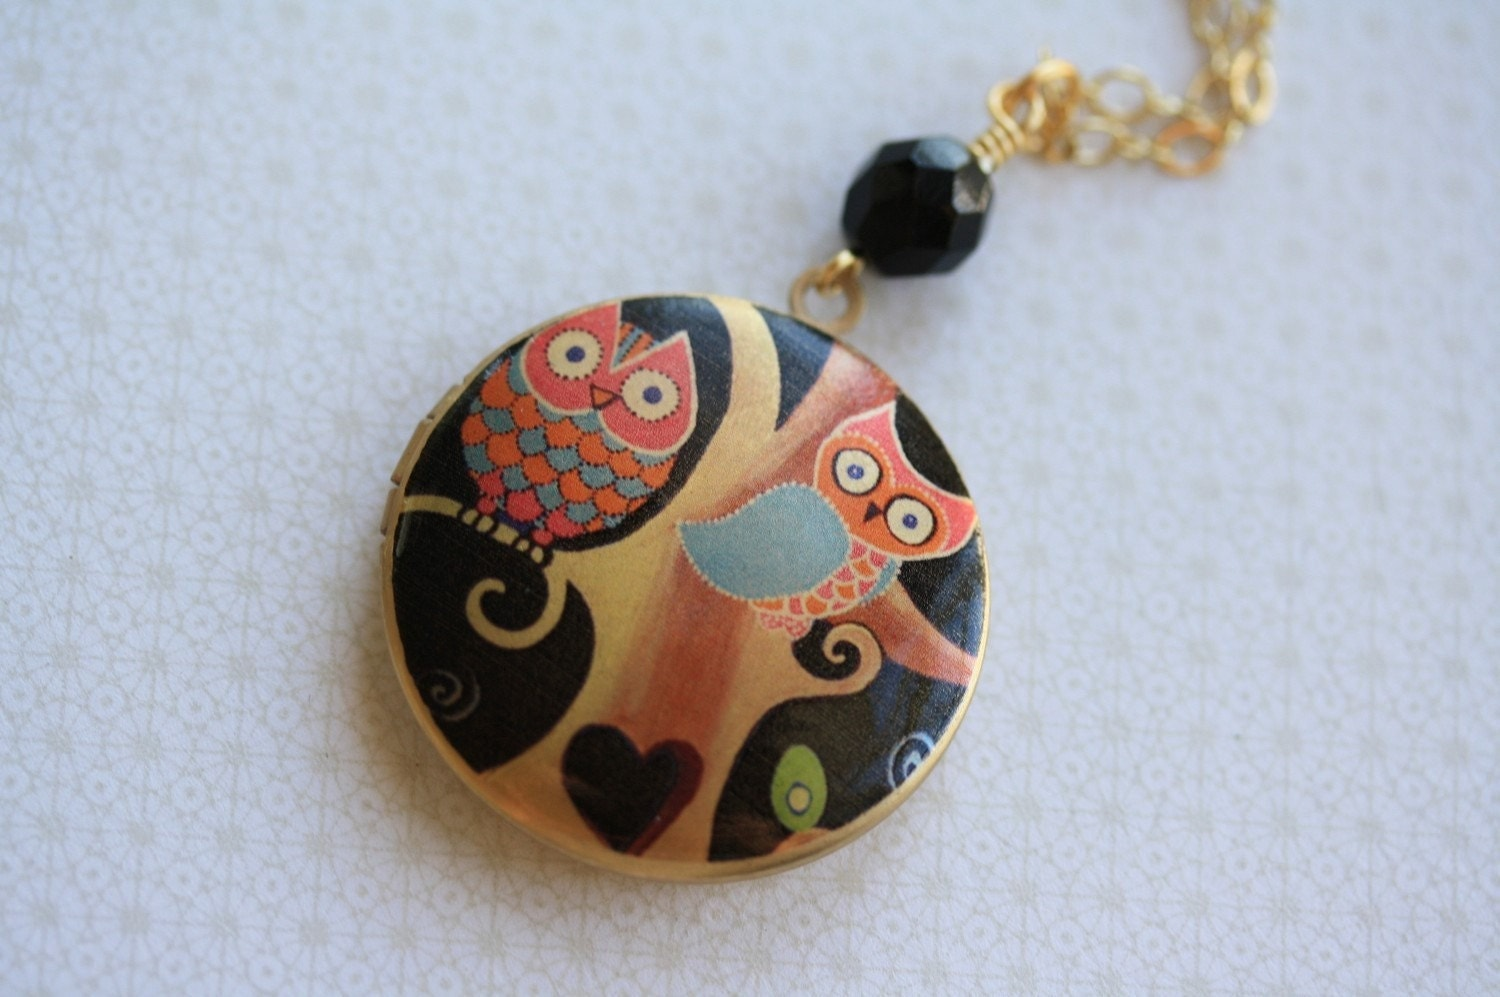 The Whimsical Perching Owls Locket Necklace